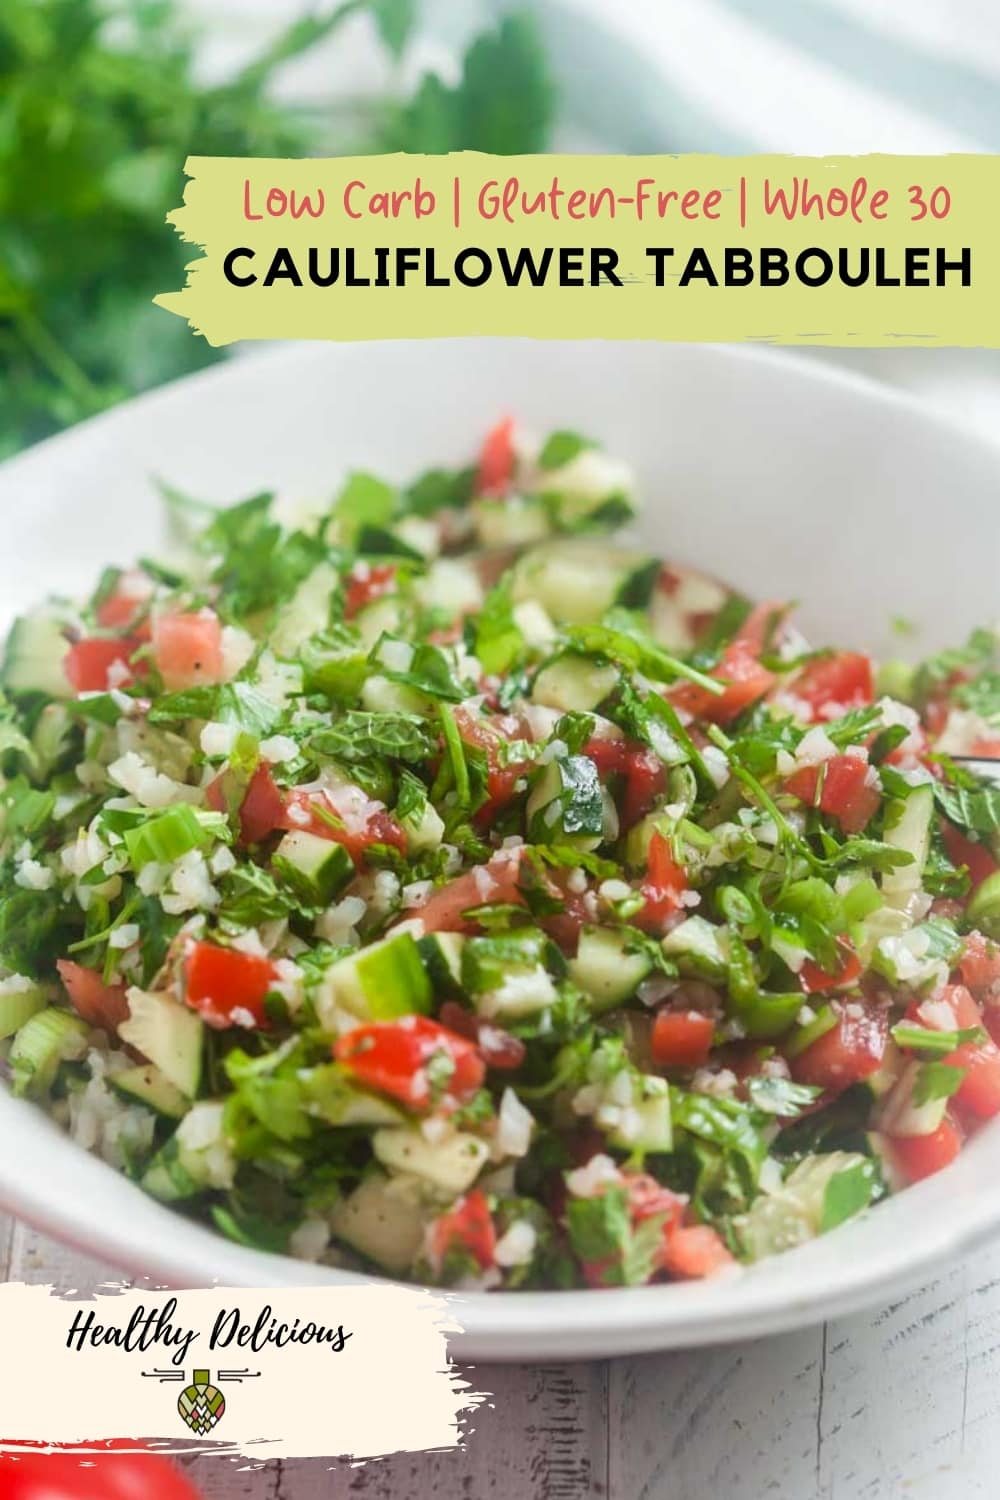 Cauliflower tabbouleh is a healthy summertime staple. This easy, no-cook side dish keeps well in the fridge and goes with everything from burgers to grilled chicken -- or serve it with hummus and pita chips for an easy appetizer! It's low cal, low carb, paleo vegan, dairy-free, grain-free and gluten-free but most of all, it's absolutely delicious. via @HealthyDelish